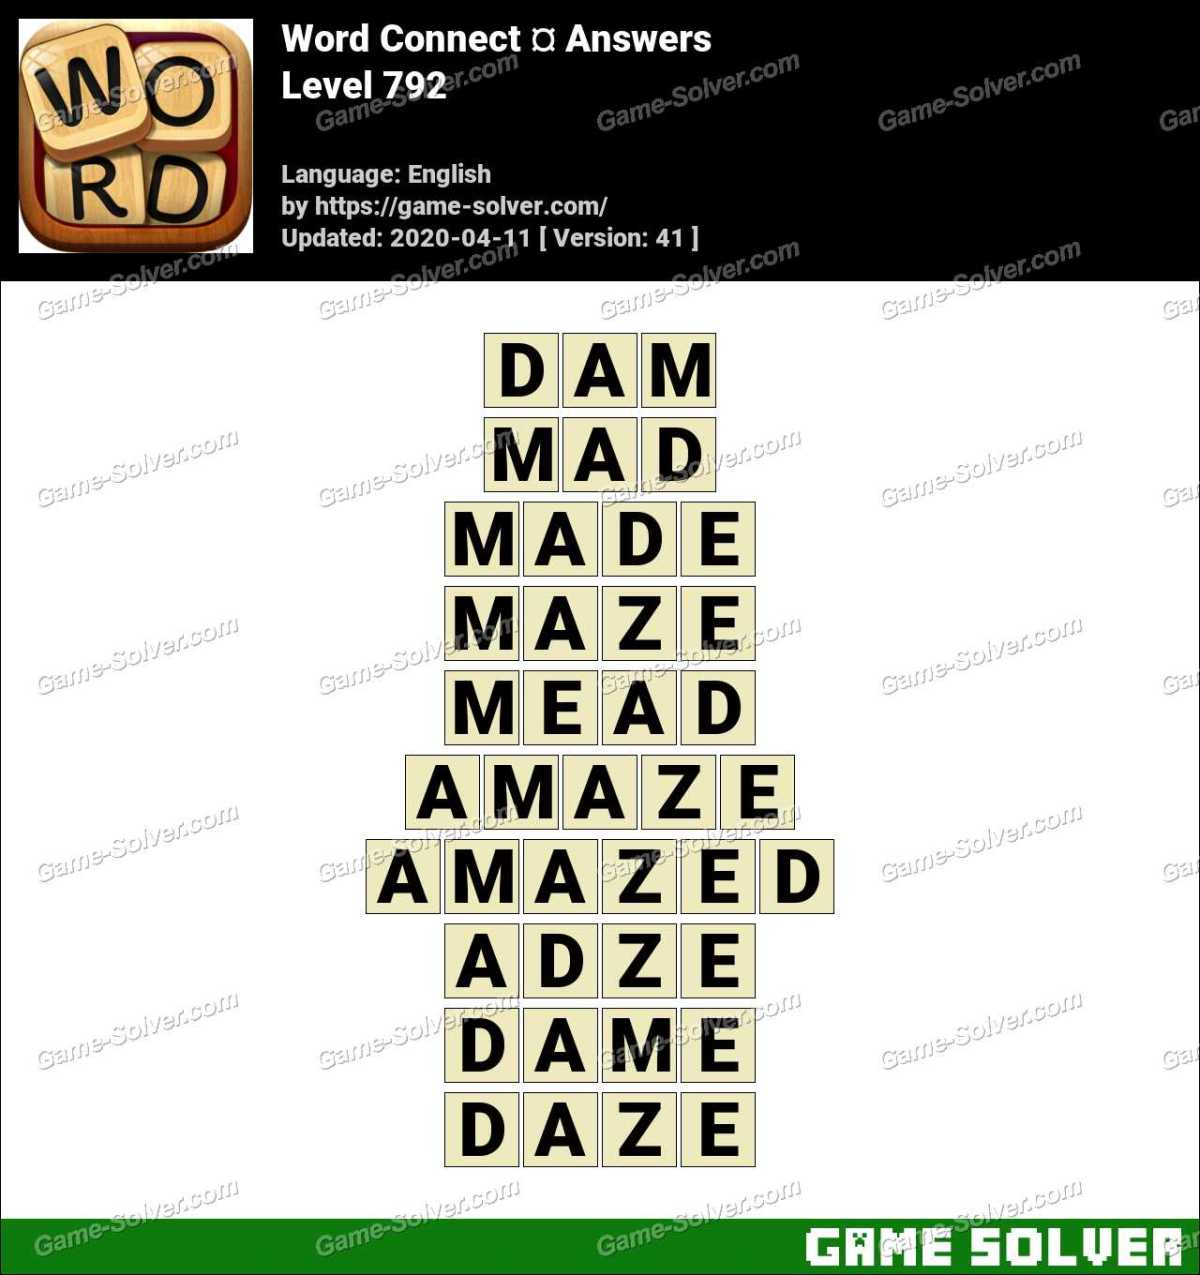 Word Connect Level 792 Answers